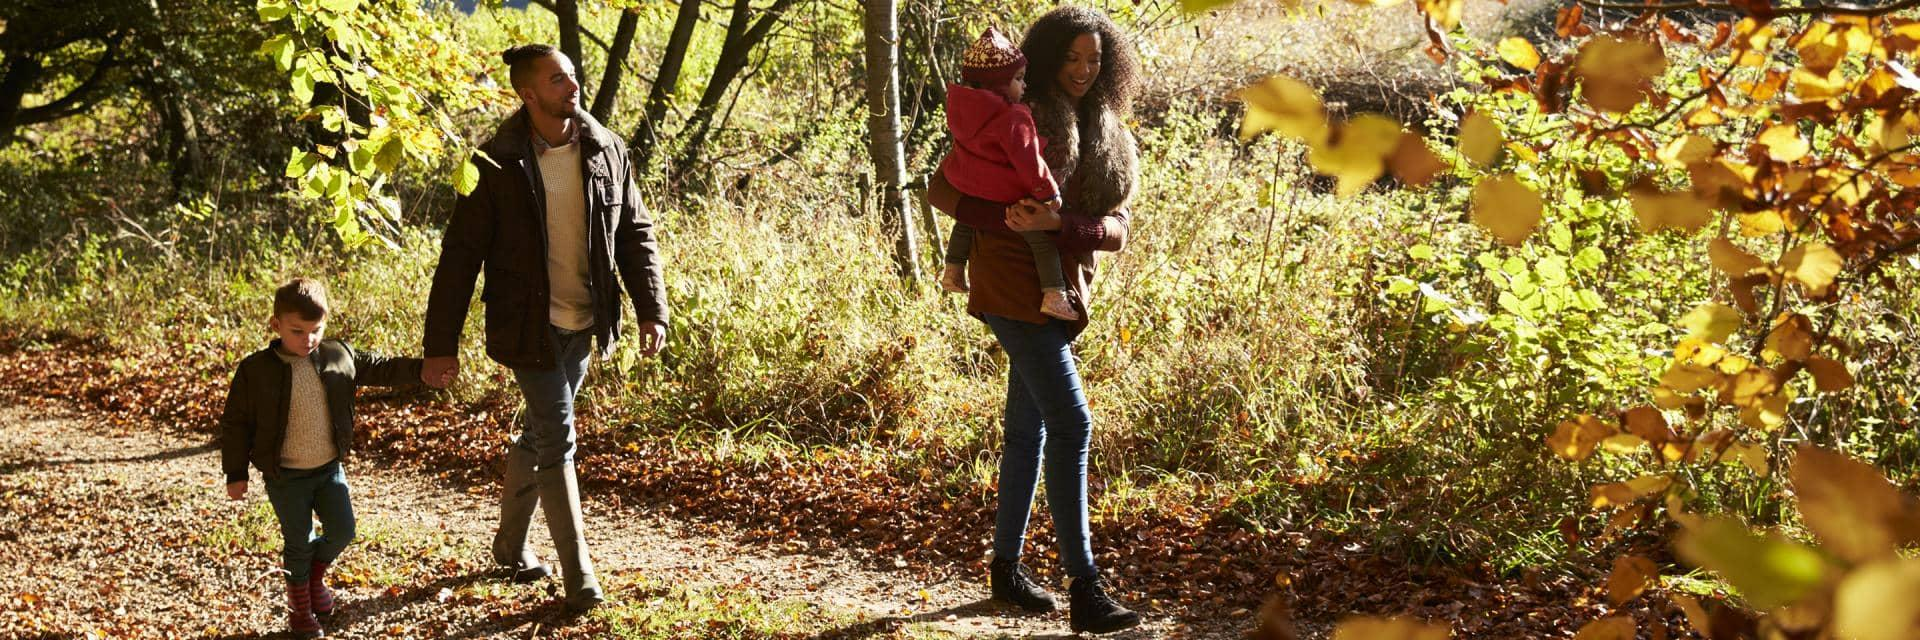 A family with young children take a walk in the woods in autumn